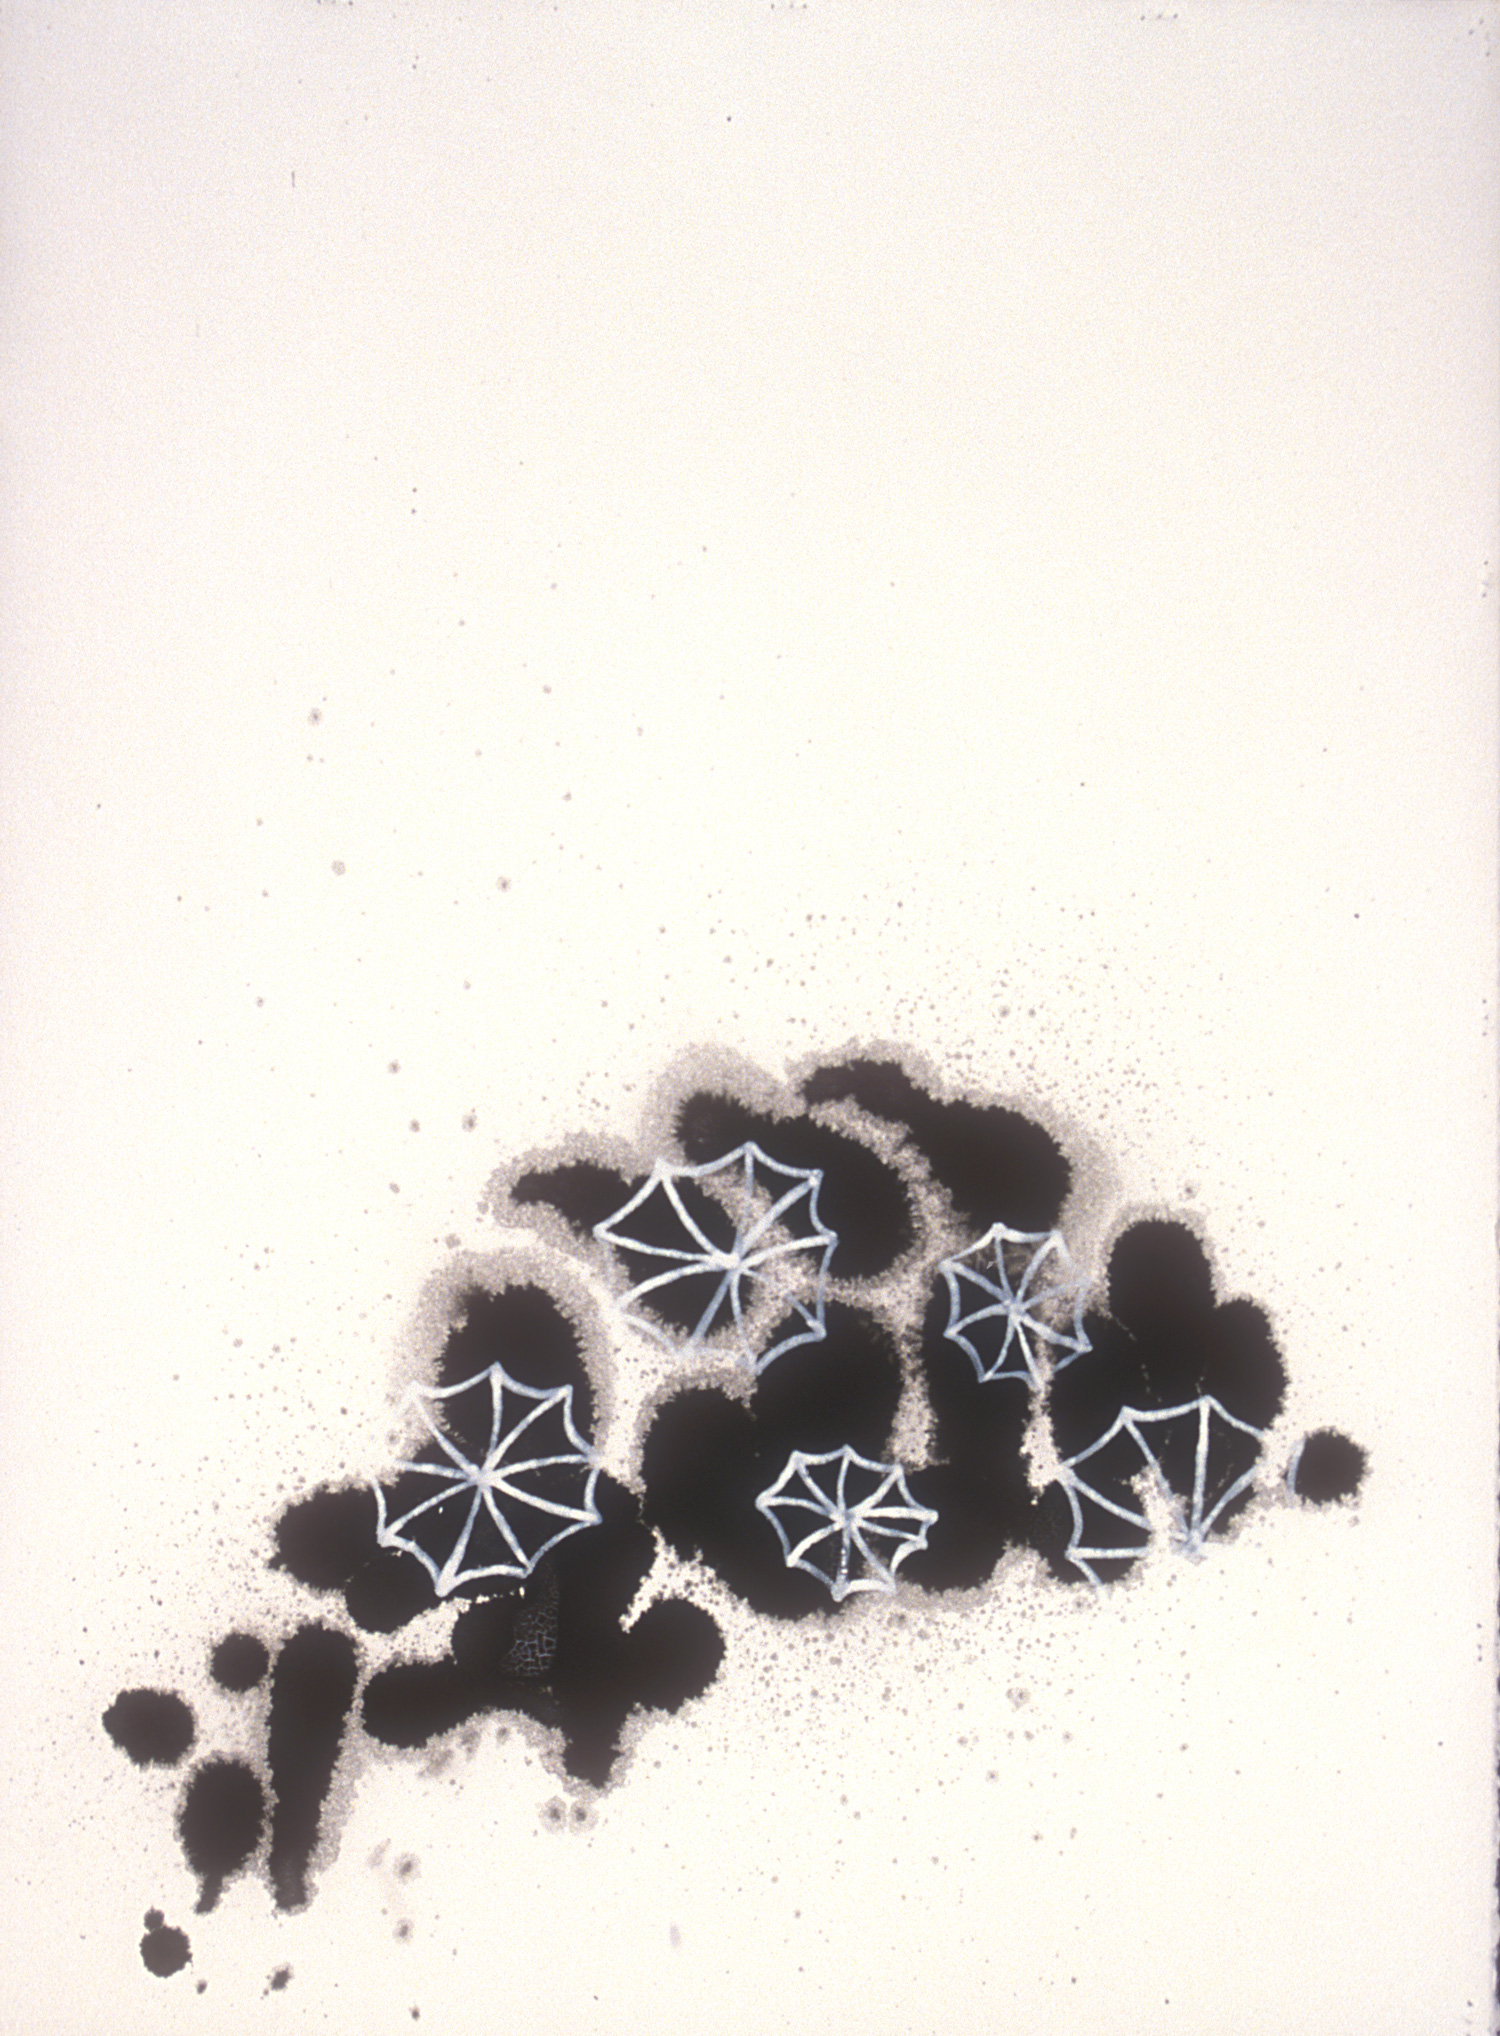 Aquatic 4  , 2003, India ink and gesso on paper, 36 x 22 in.